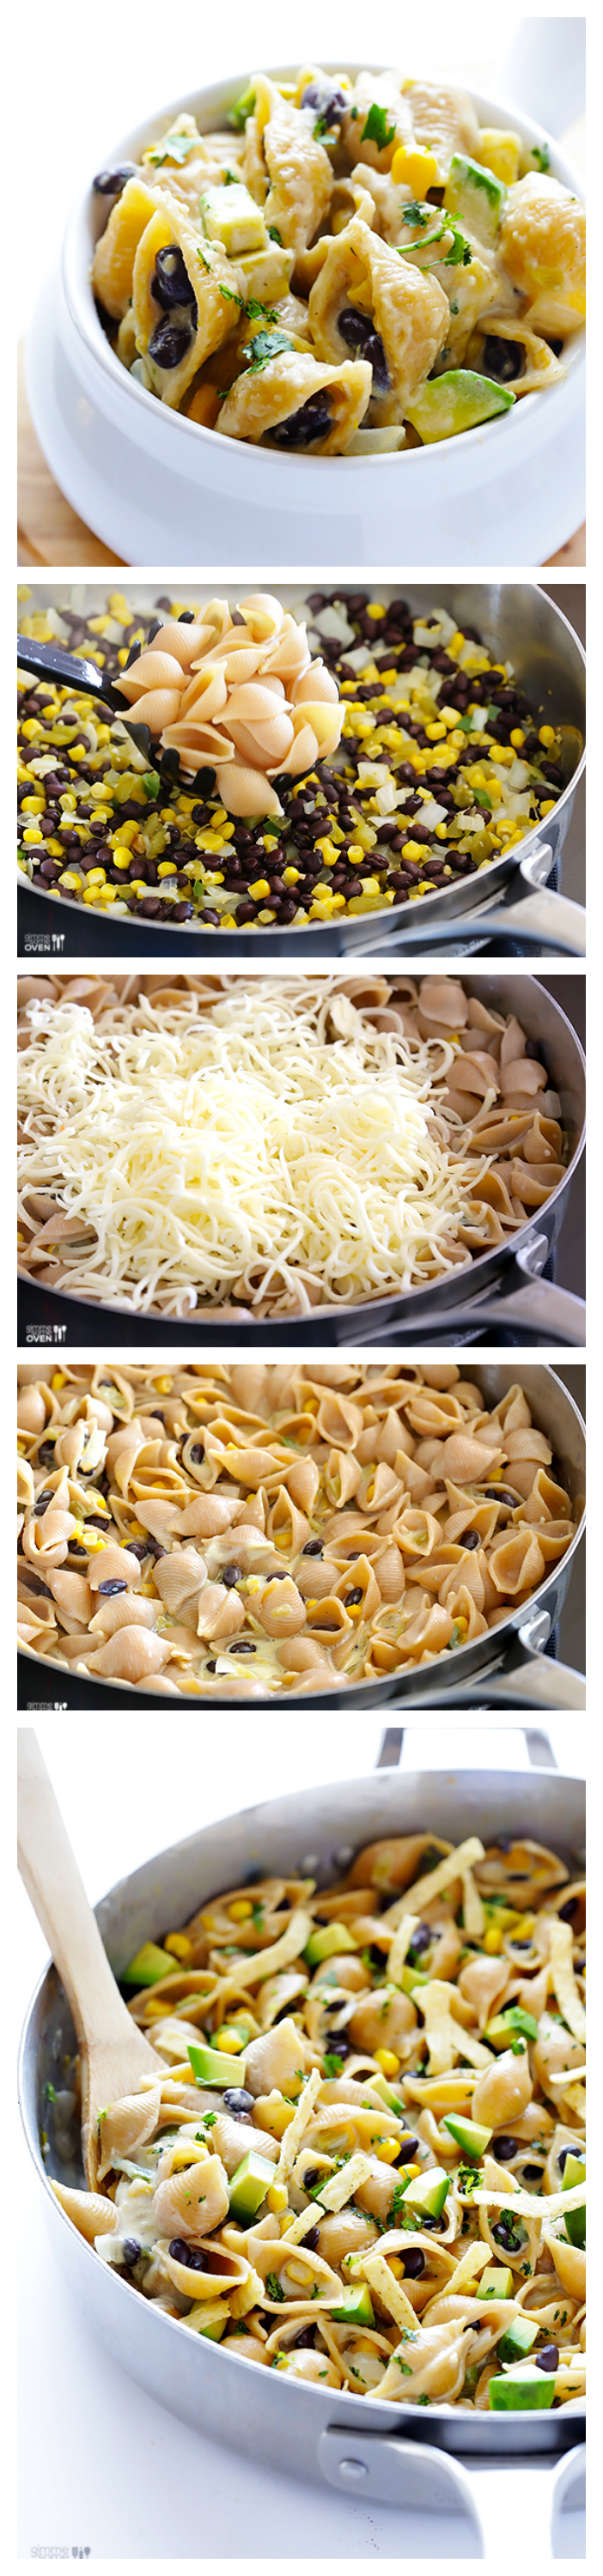 Mexi Macaroni and Cheese from @Ali Velez Ebright (Gimme Some Oven)